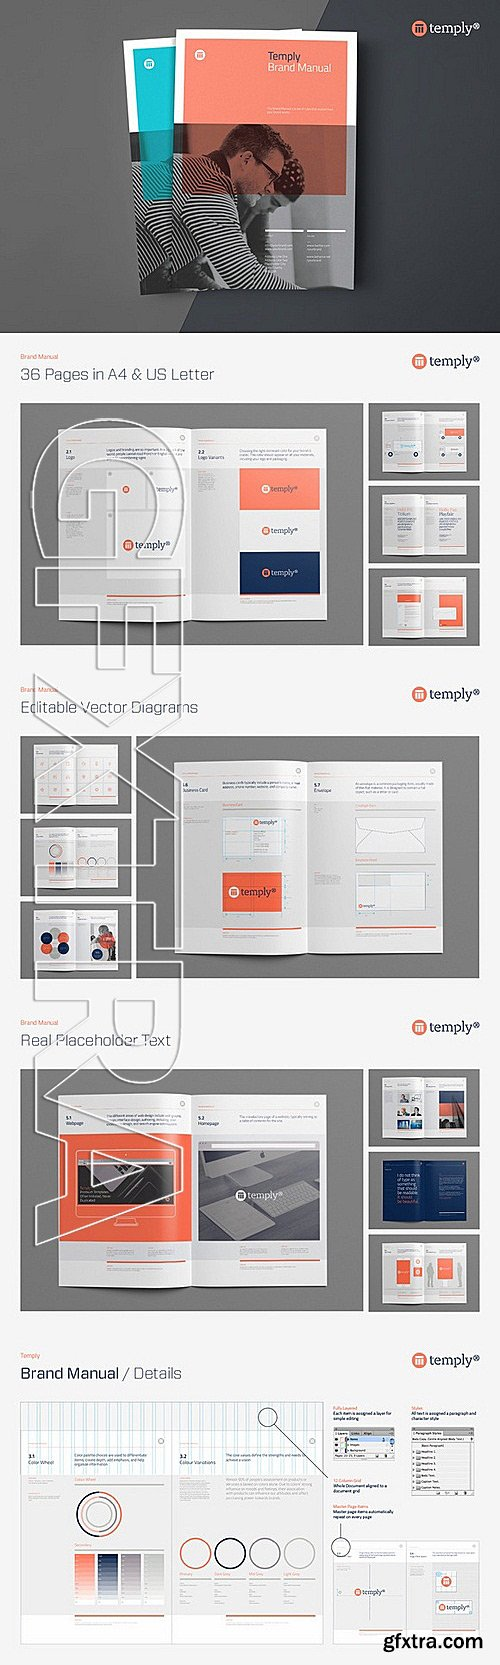 CM - Brand Manual Template 282539